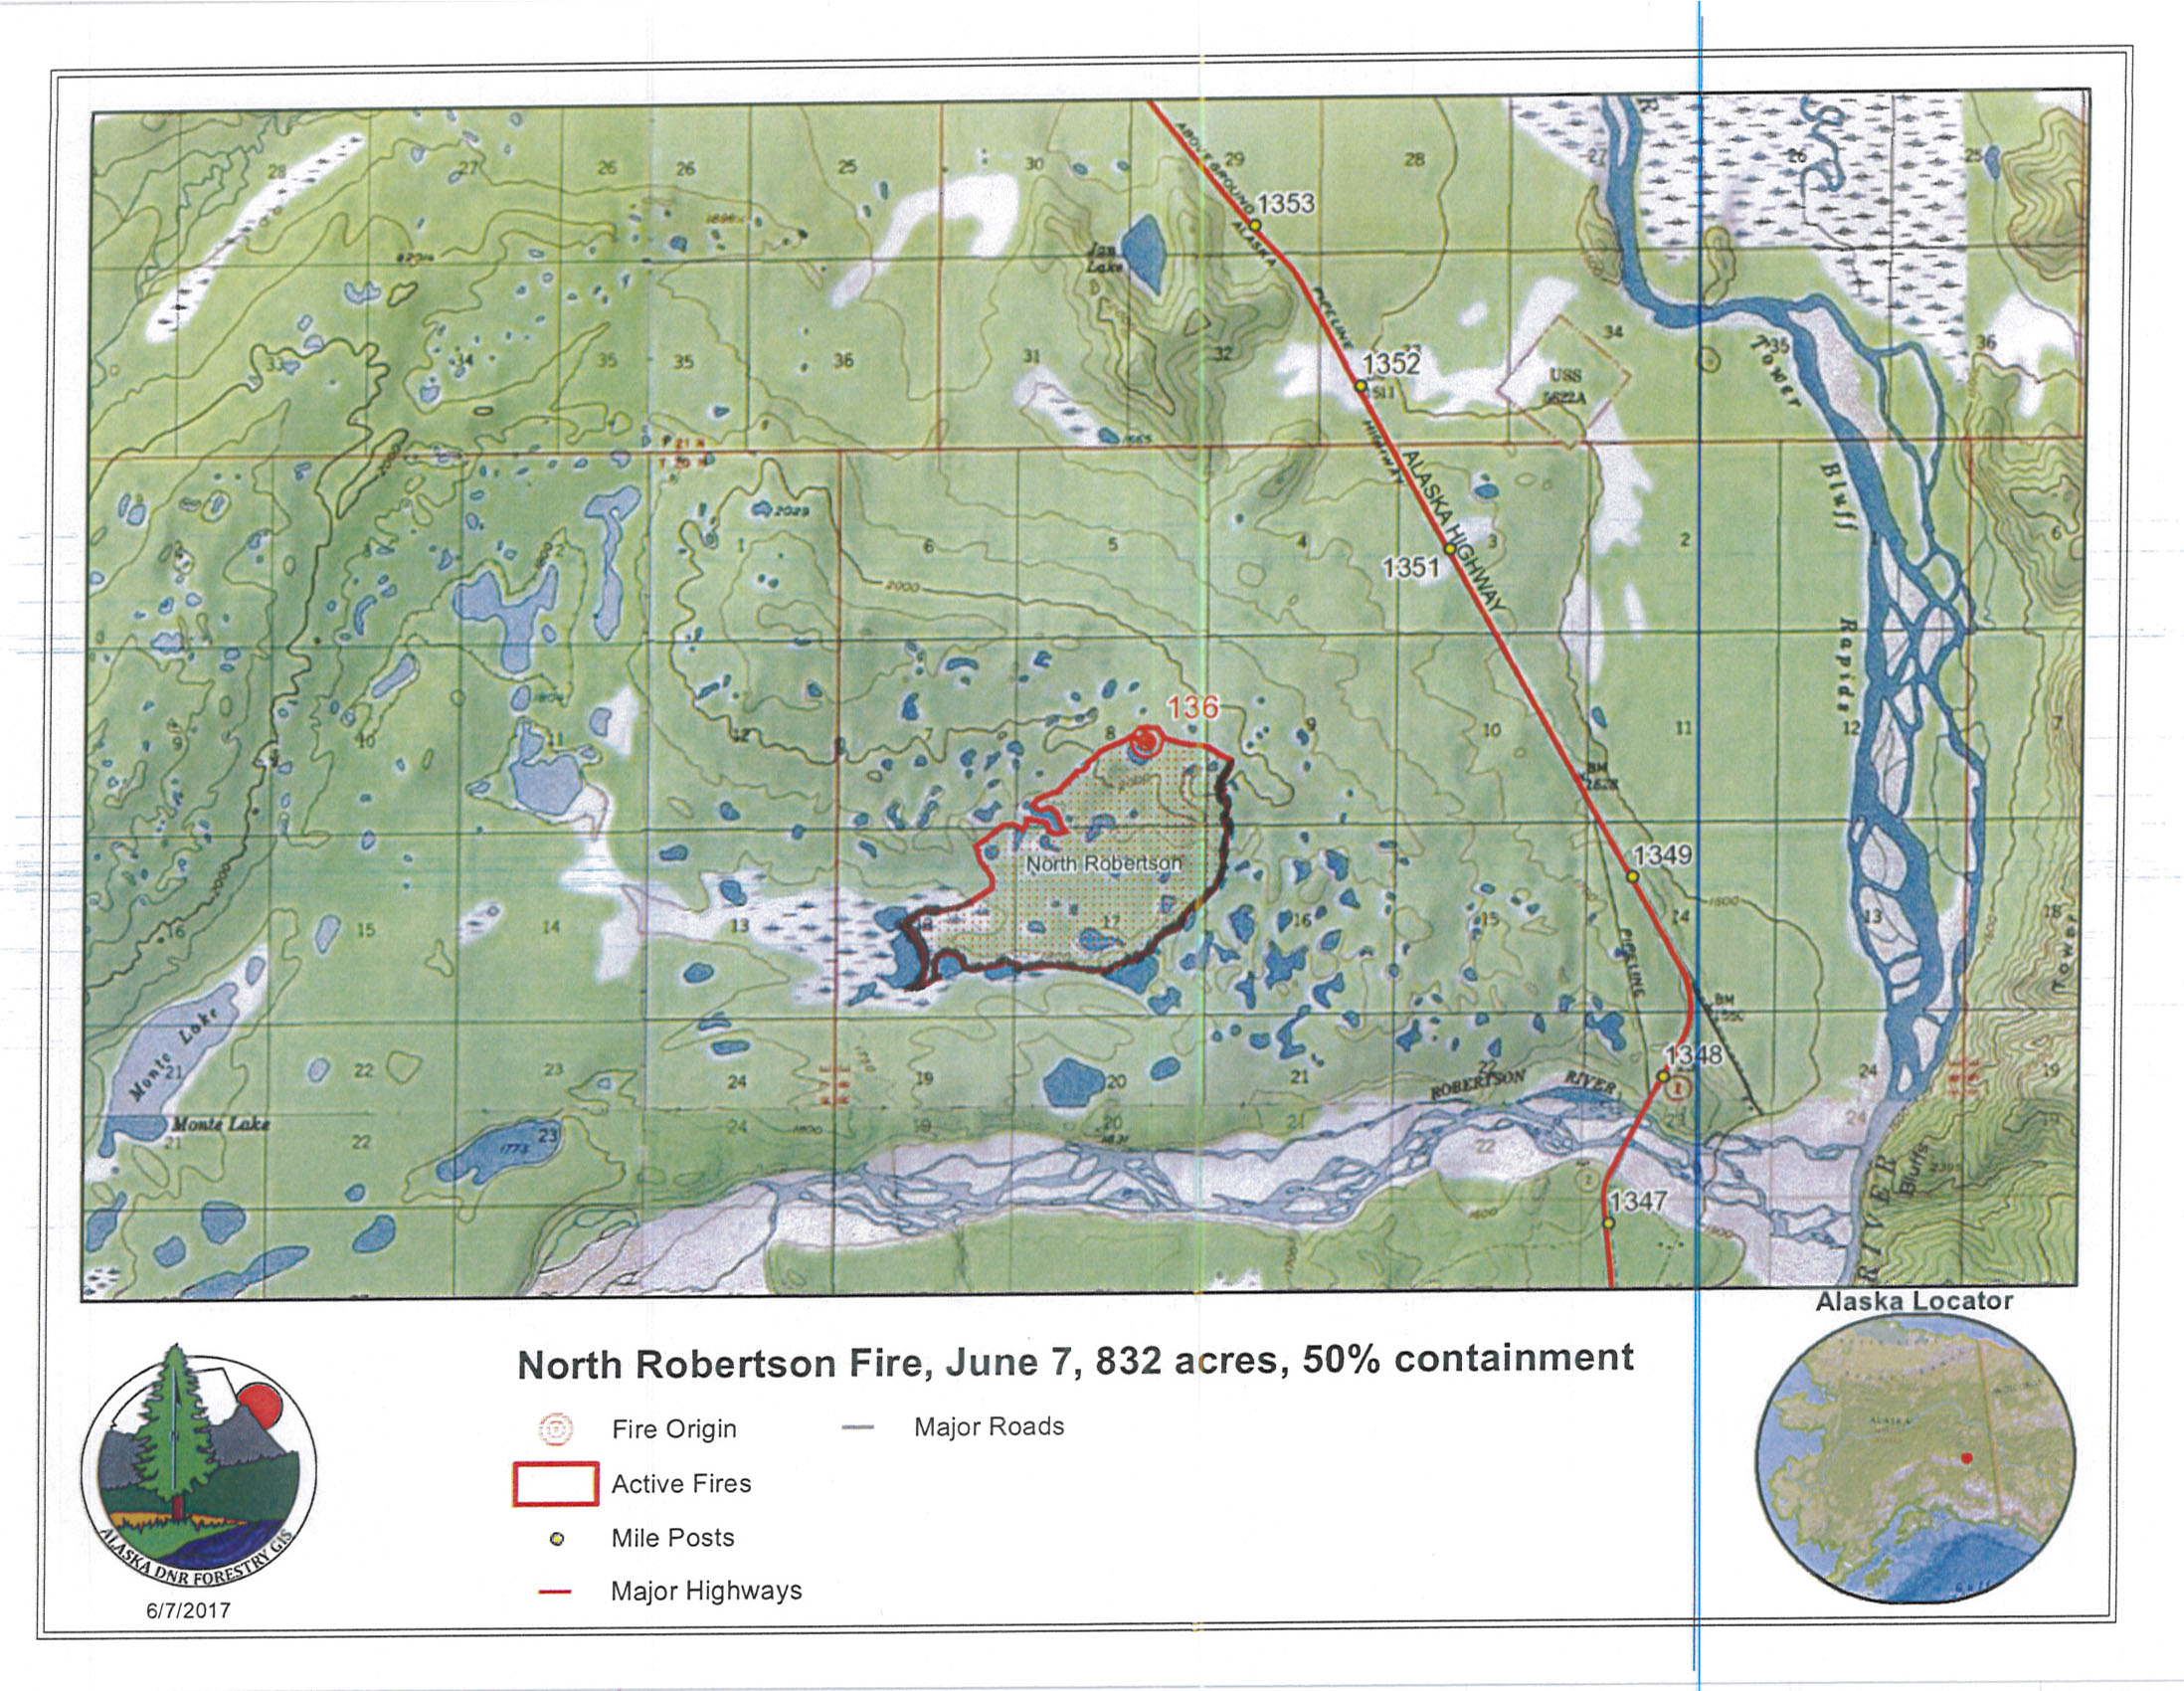 Bluff Alaska Map.Containment At 50 Percent On North Robertson Fire Near Tok Ak Fire